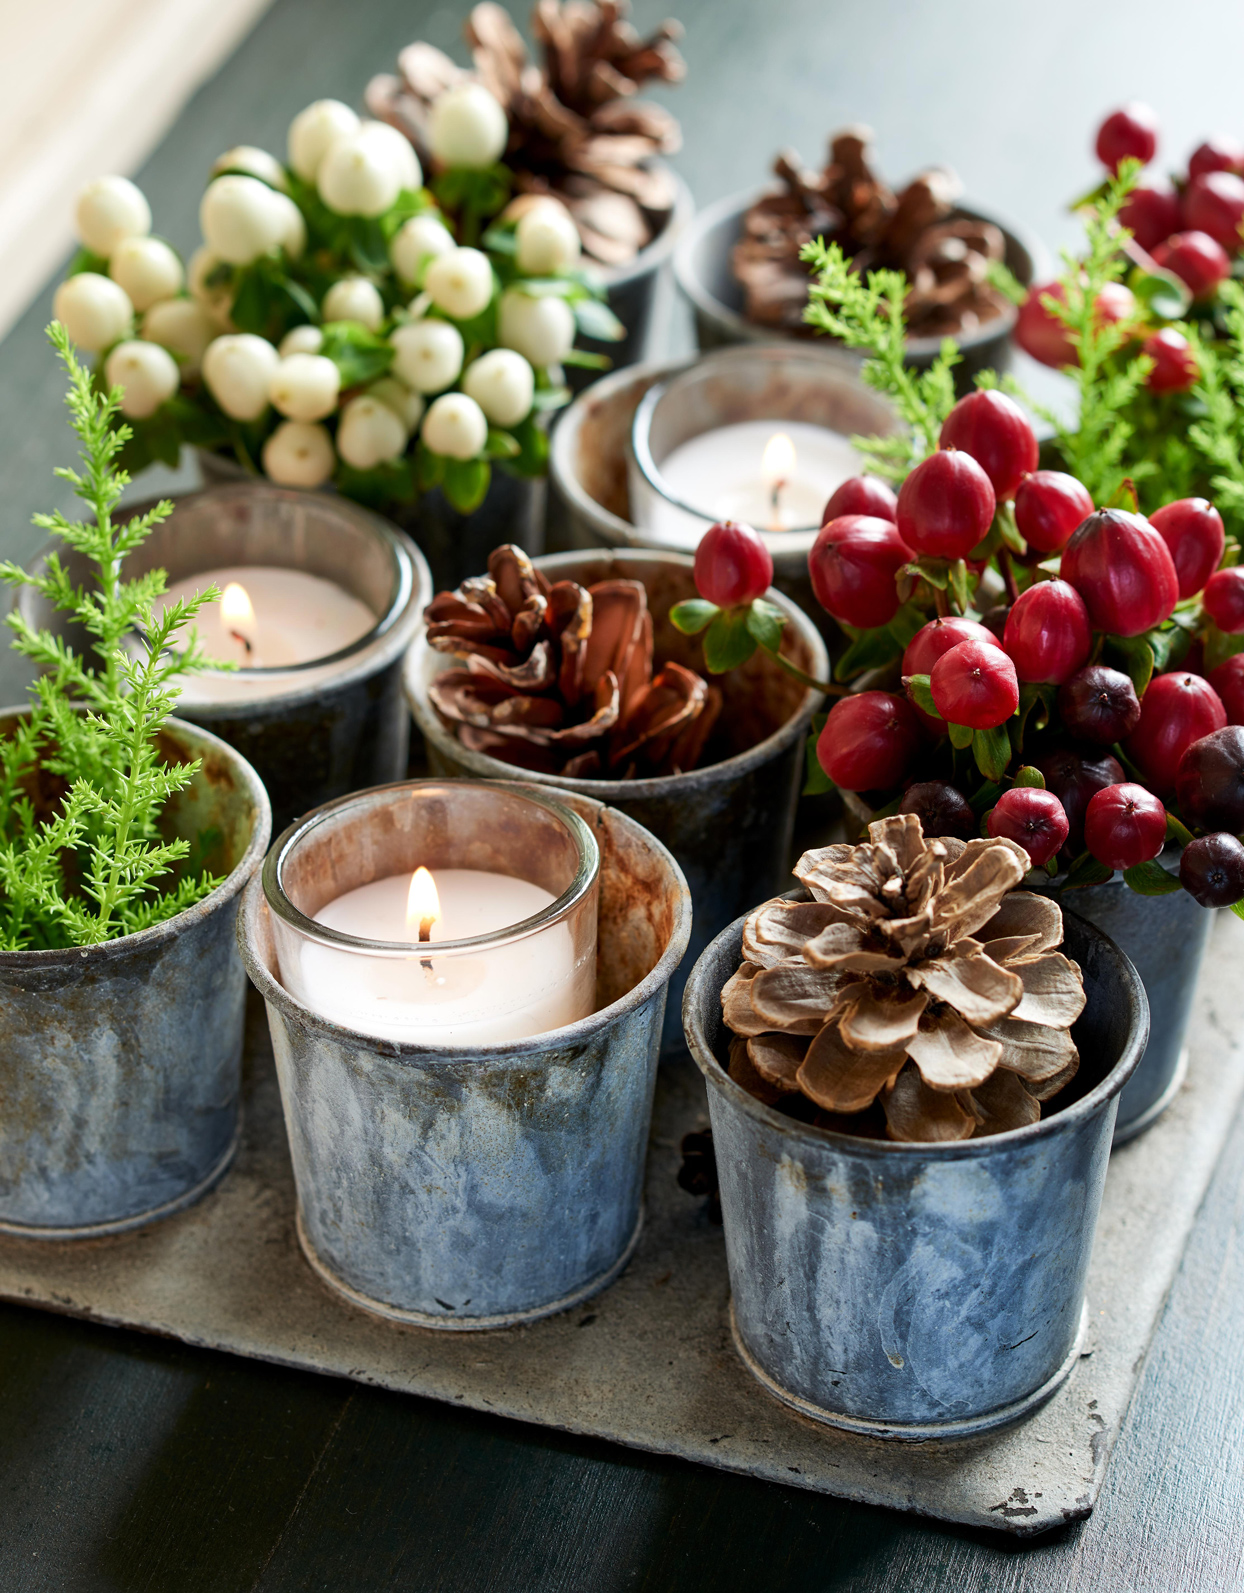 pinecones plants and candles in small metal holders